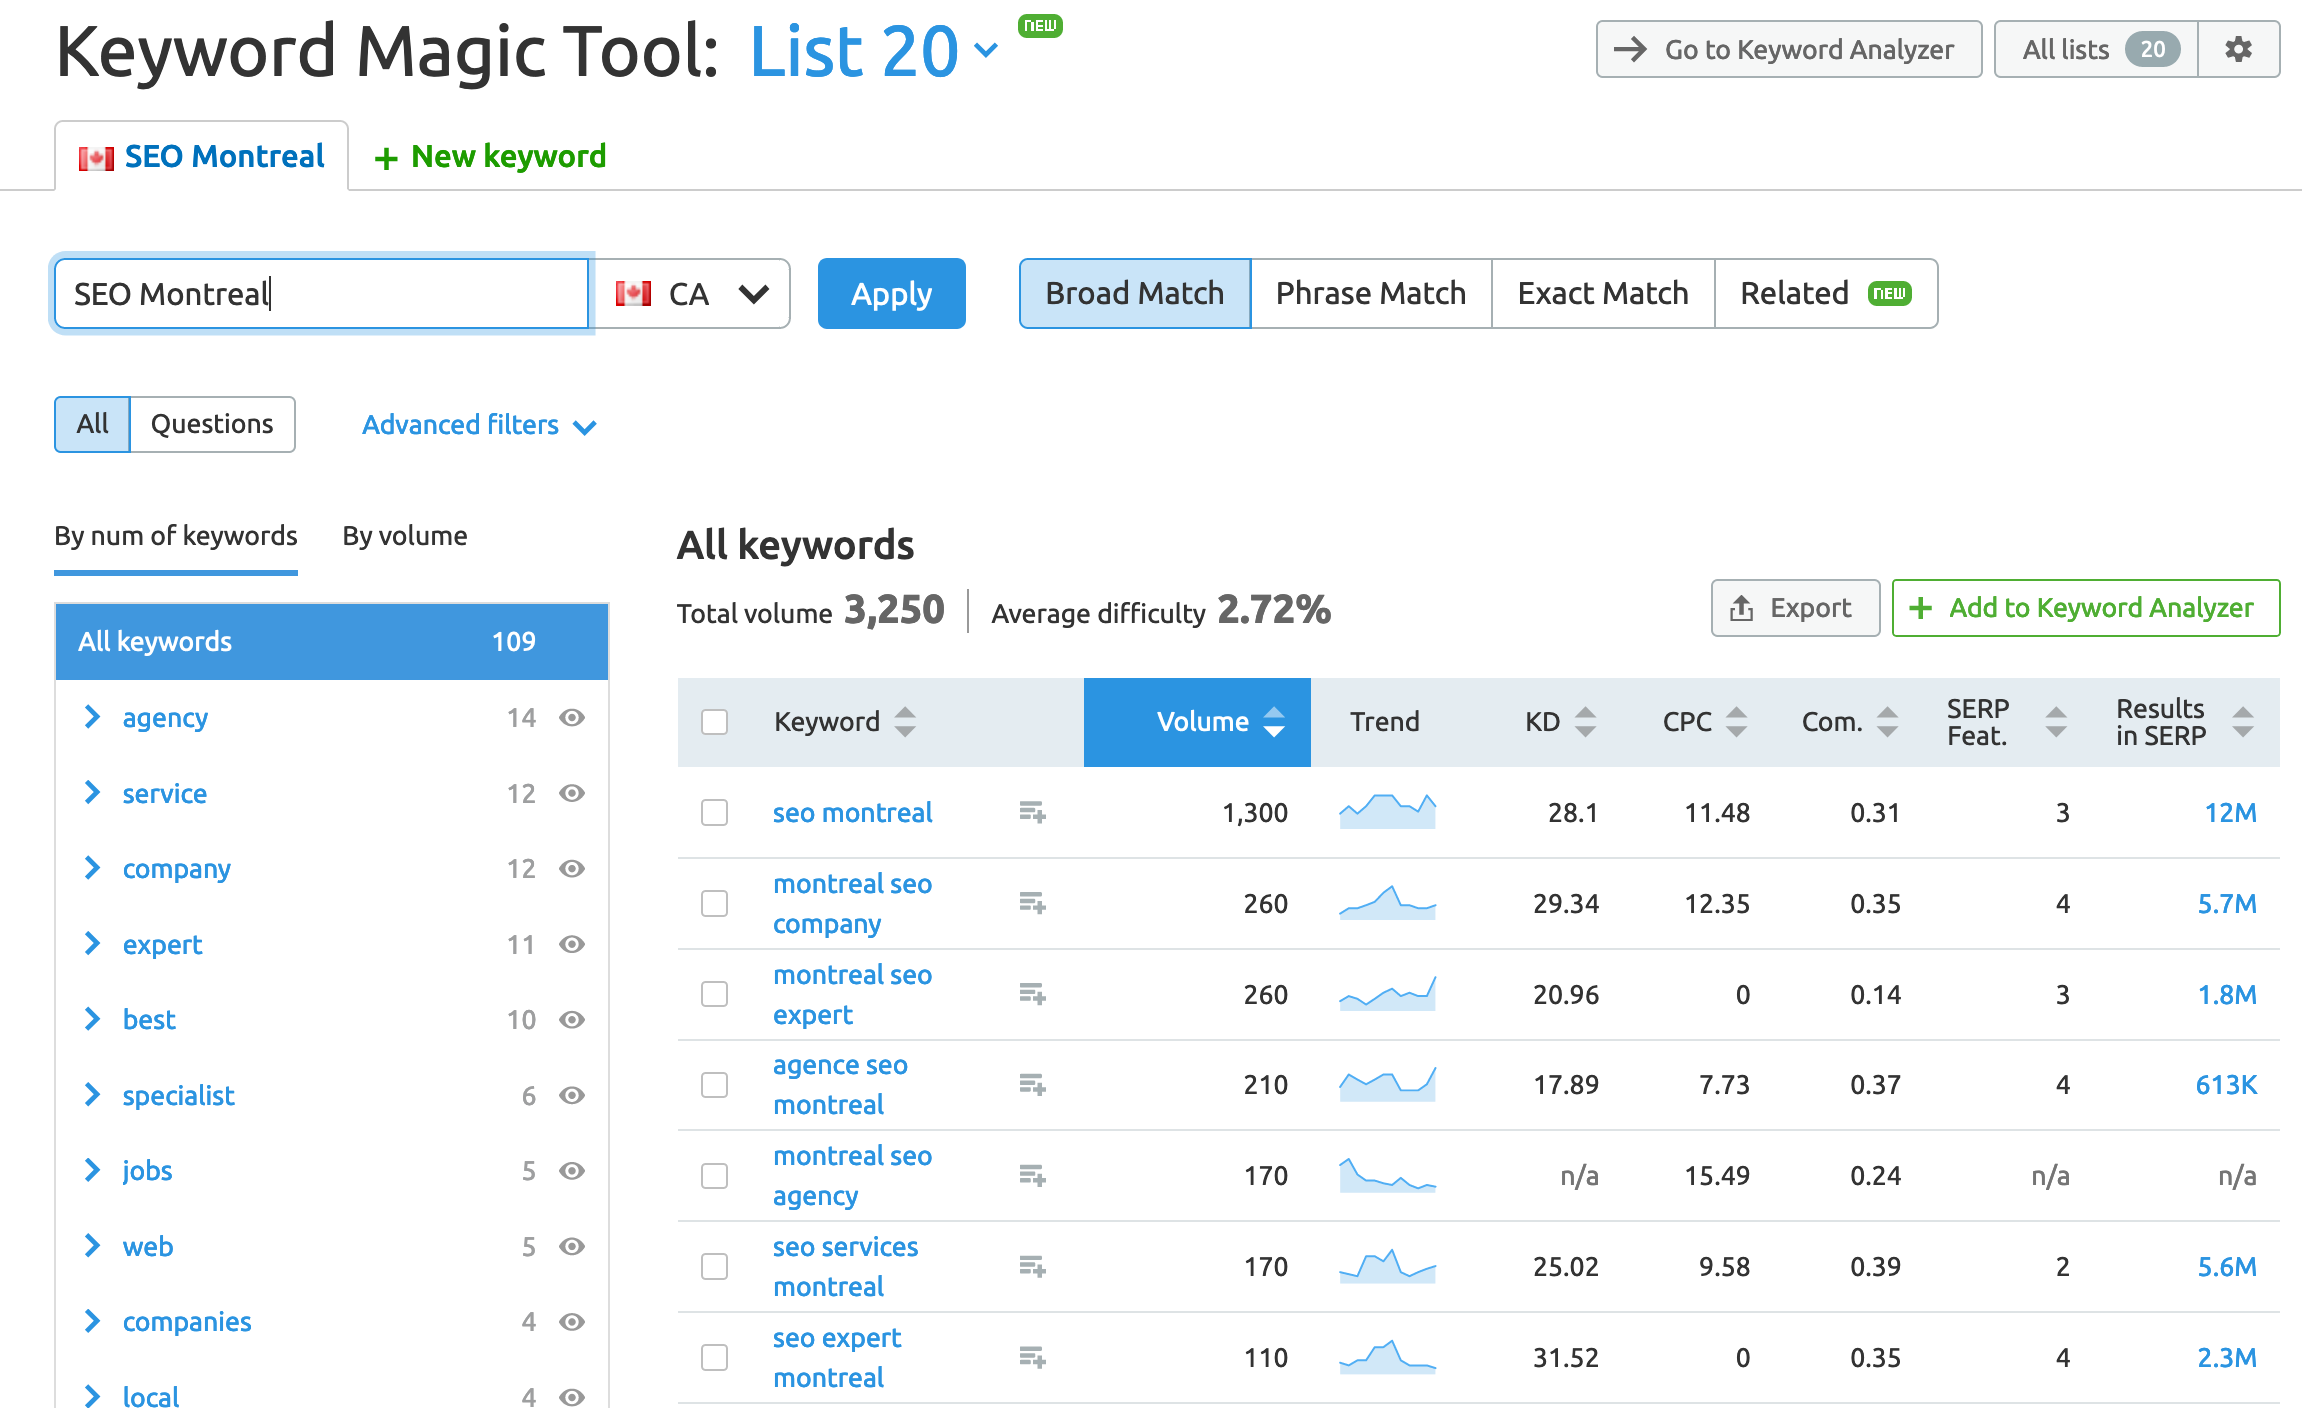 semrush - keyword magic tool